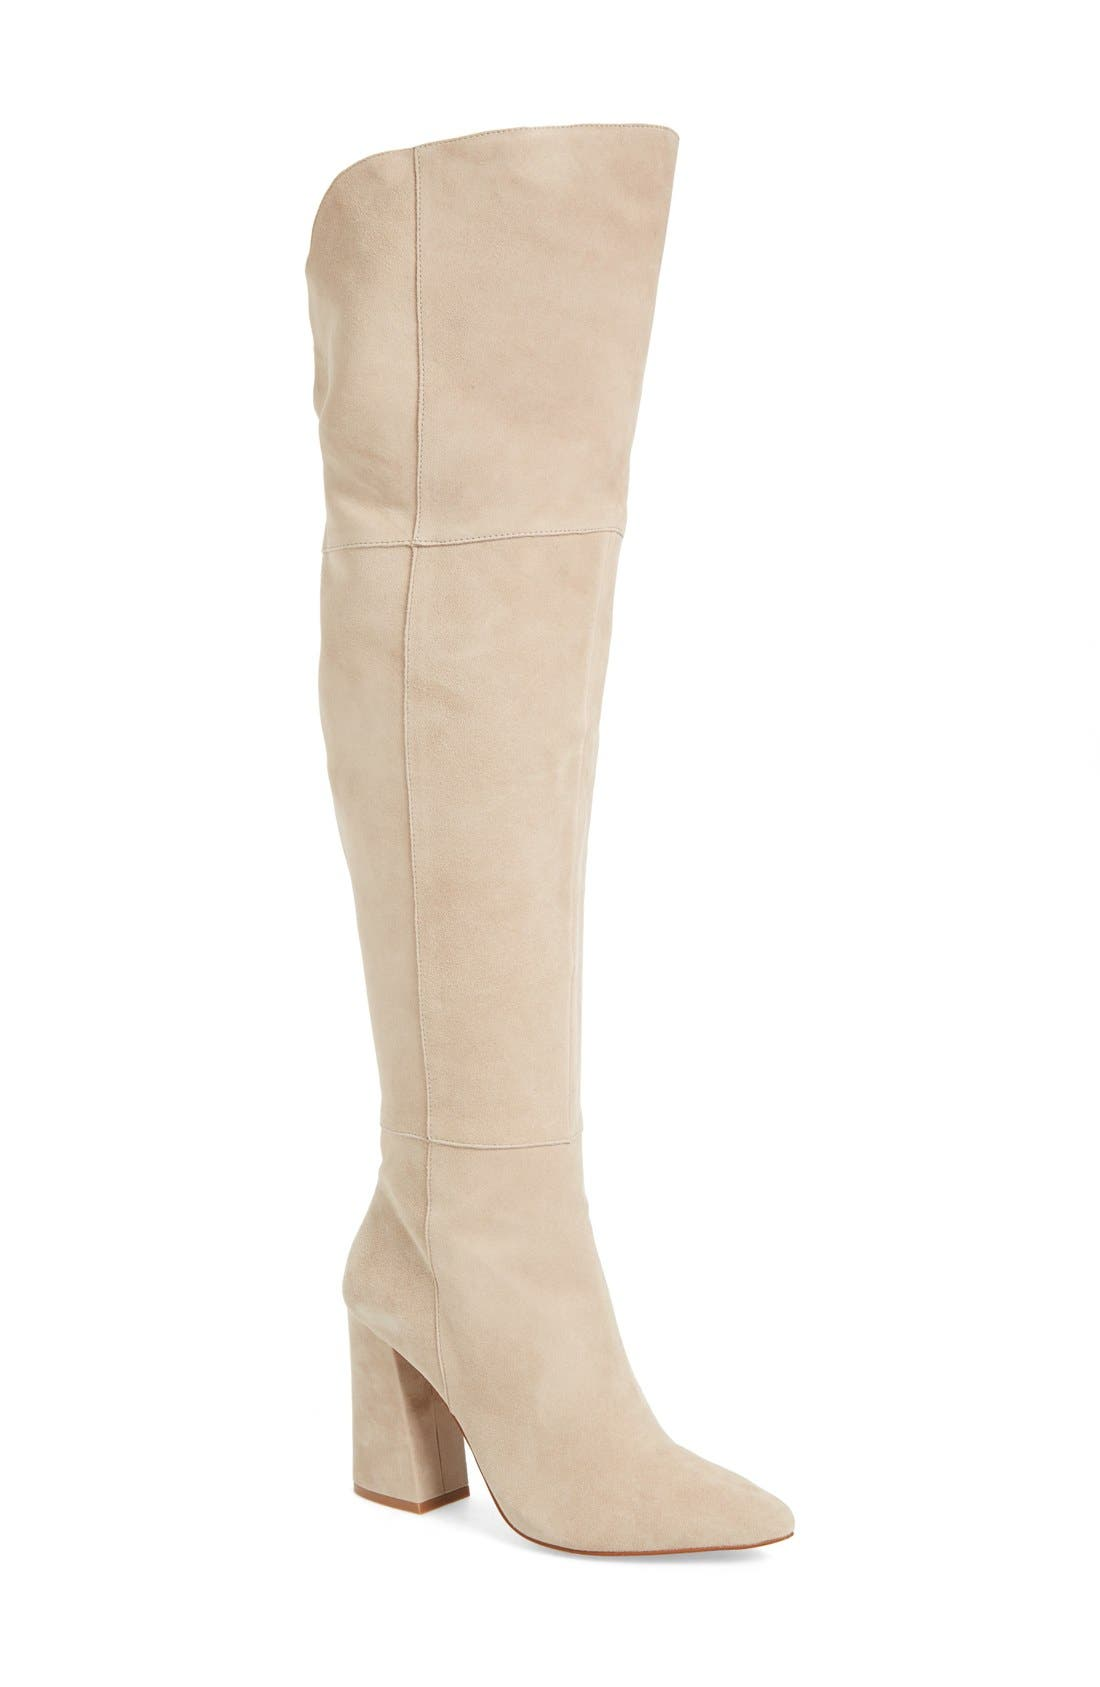 Kristin Cavallari 'Saffron' Over the Knee Boot (Women)